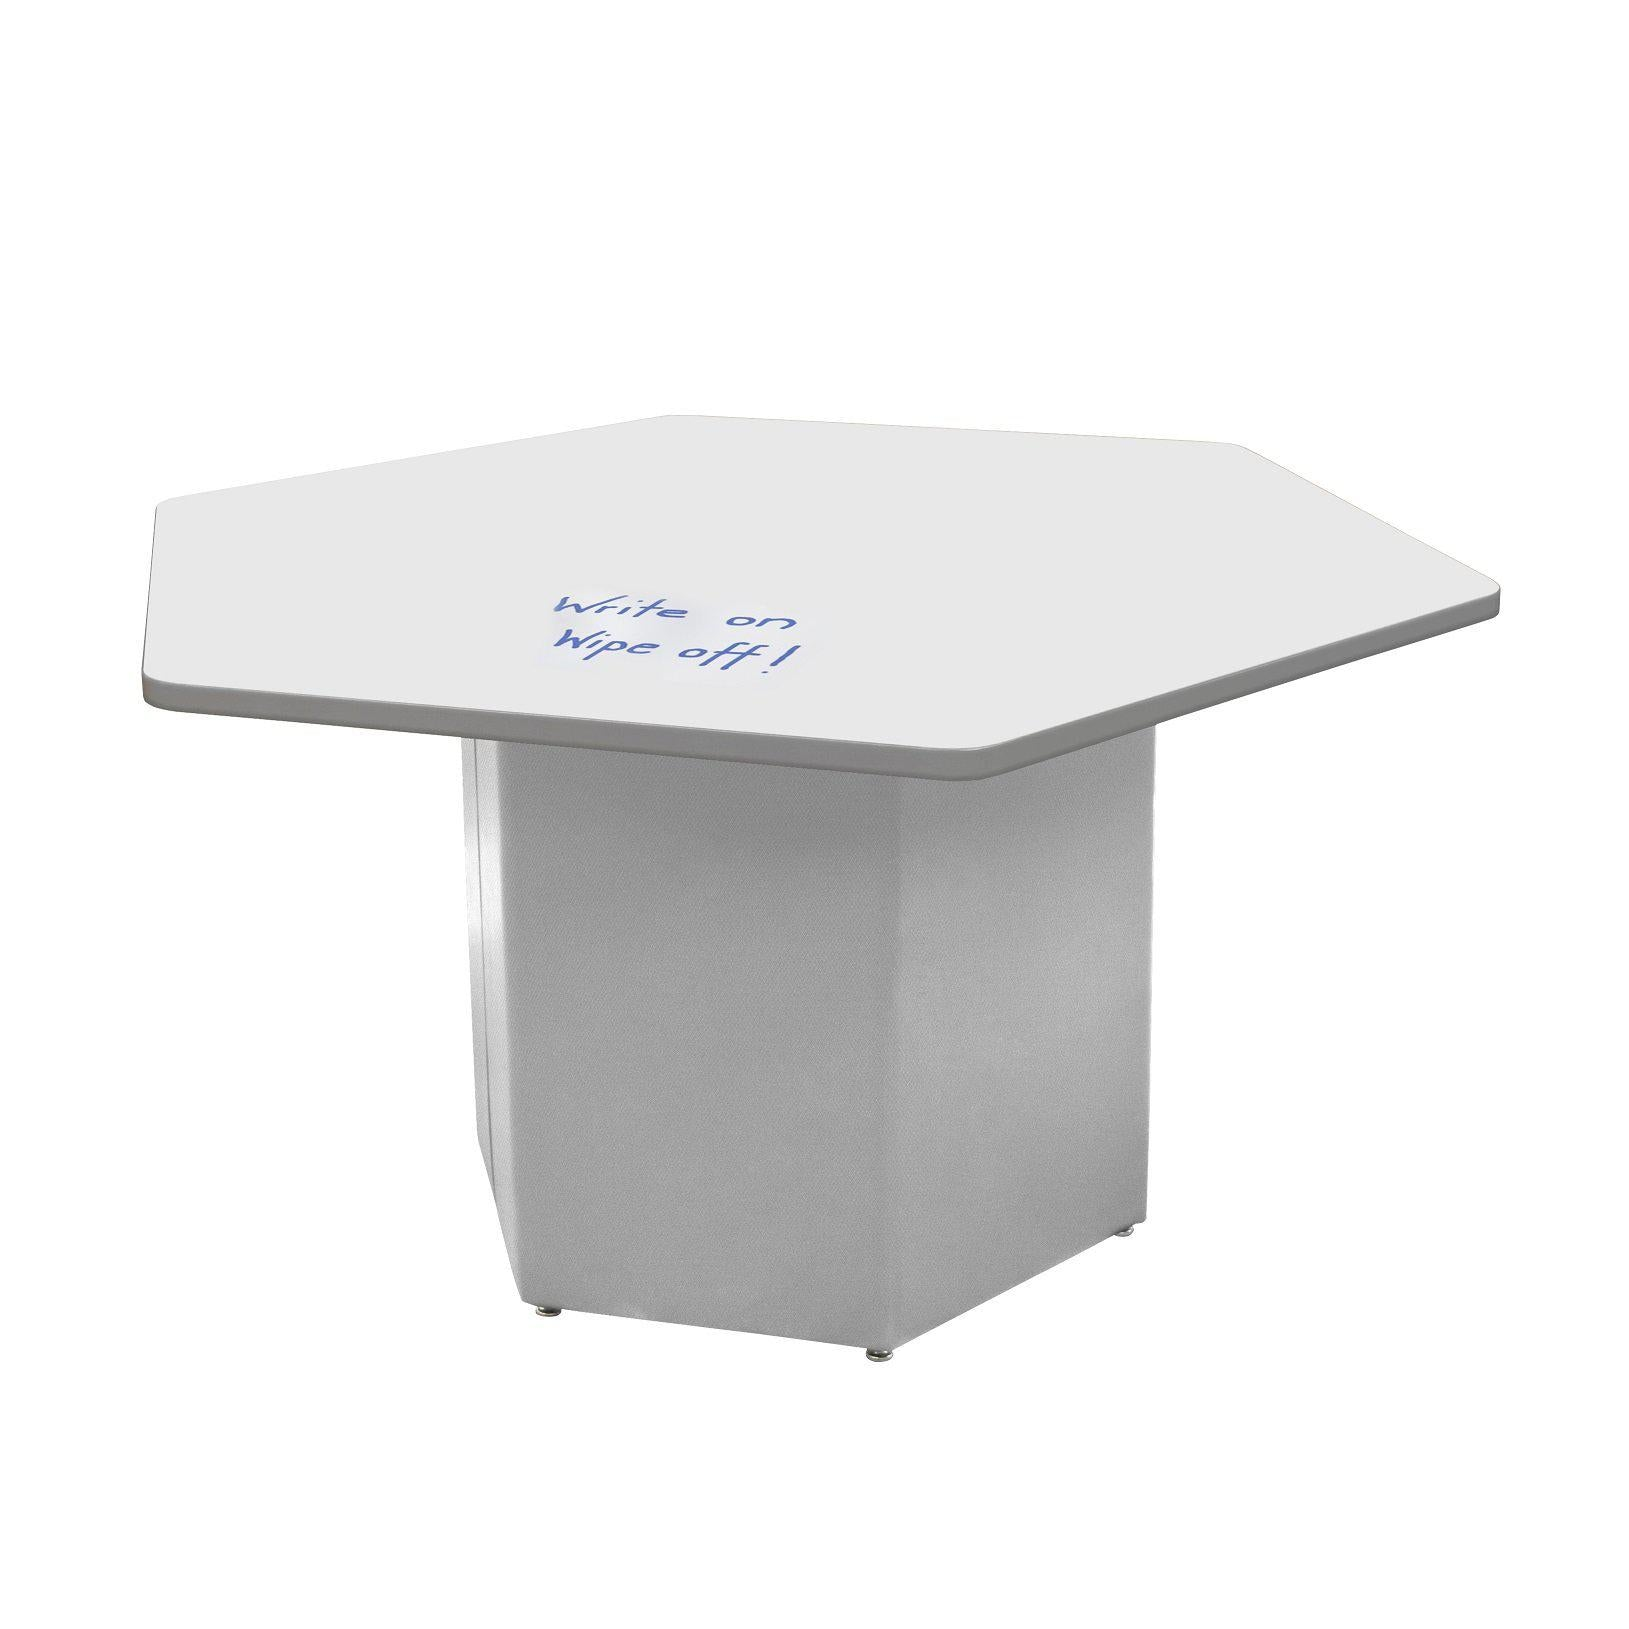 "Sonik™ Soft Seating Hexagon Table with Markerboard Top-Soft Seating-29""-Markerboard/Gray-Frost"